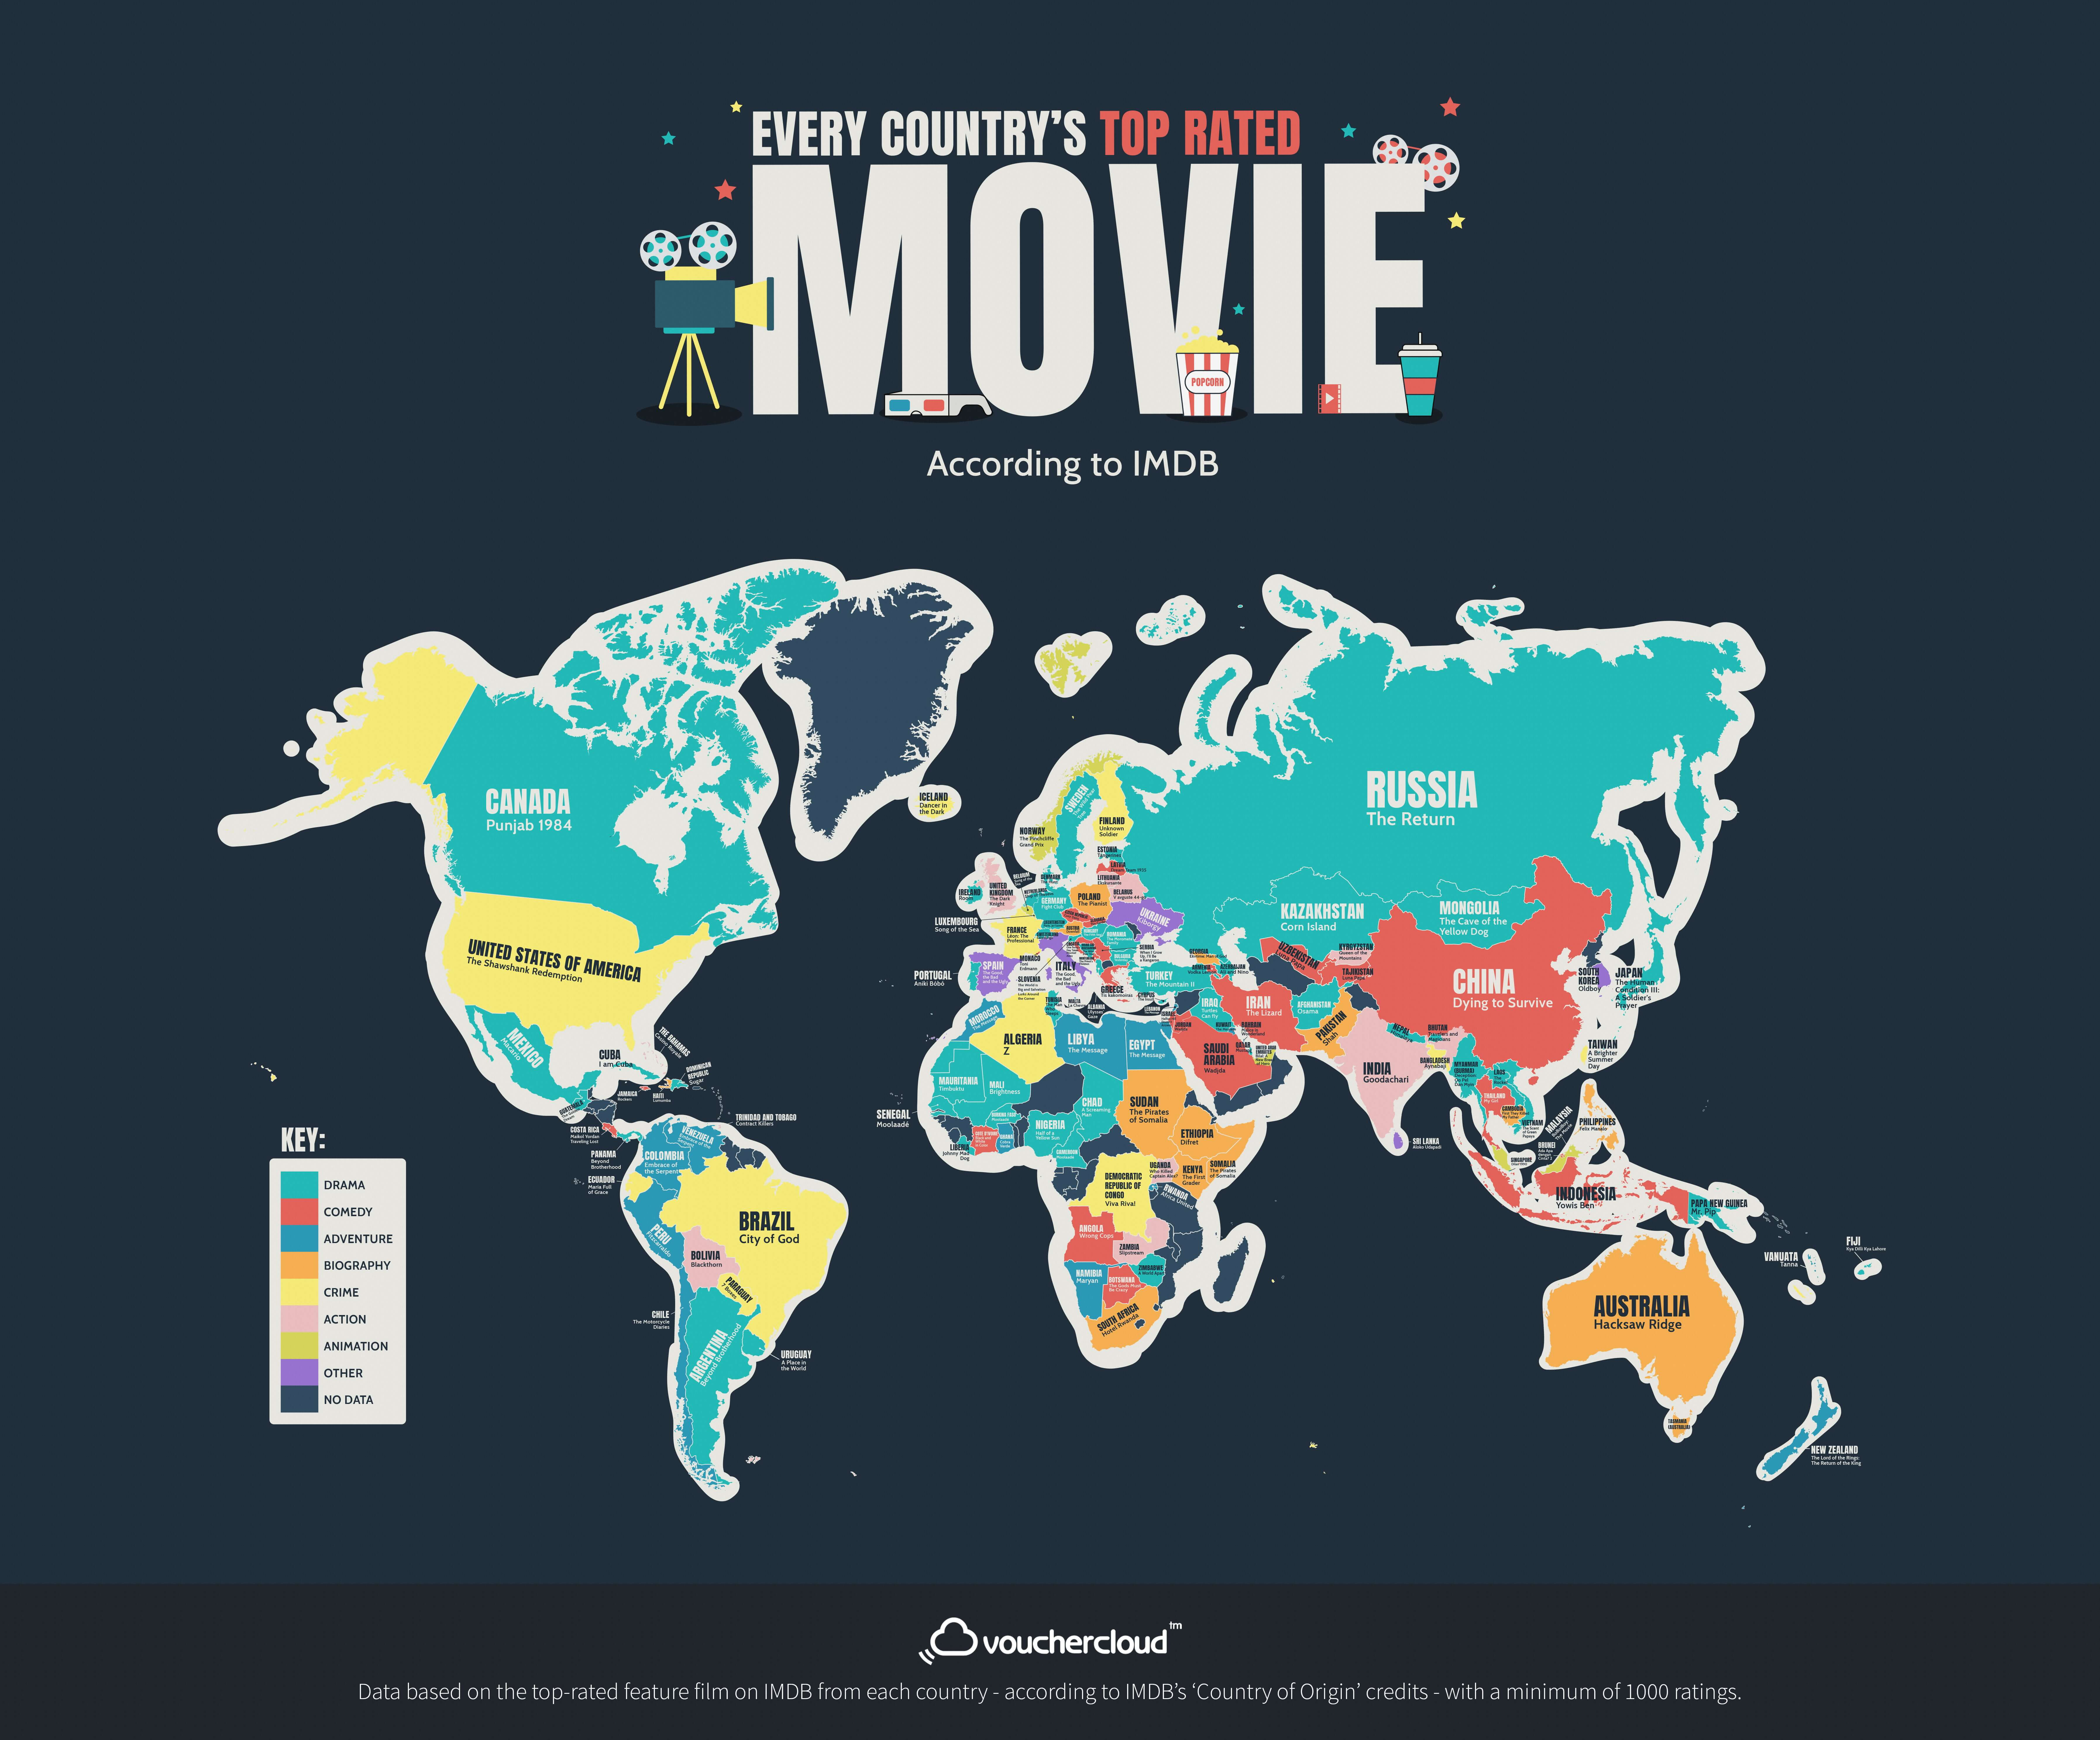 Most Popular Film Produced In Every Country Mapped